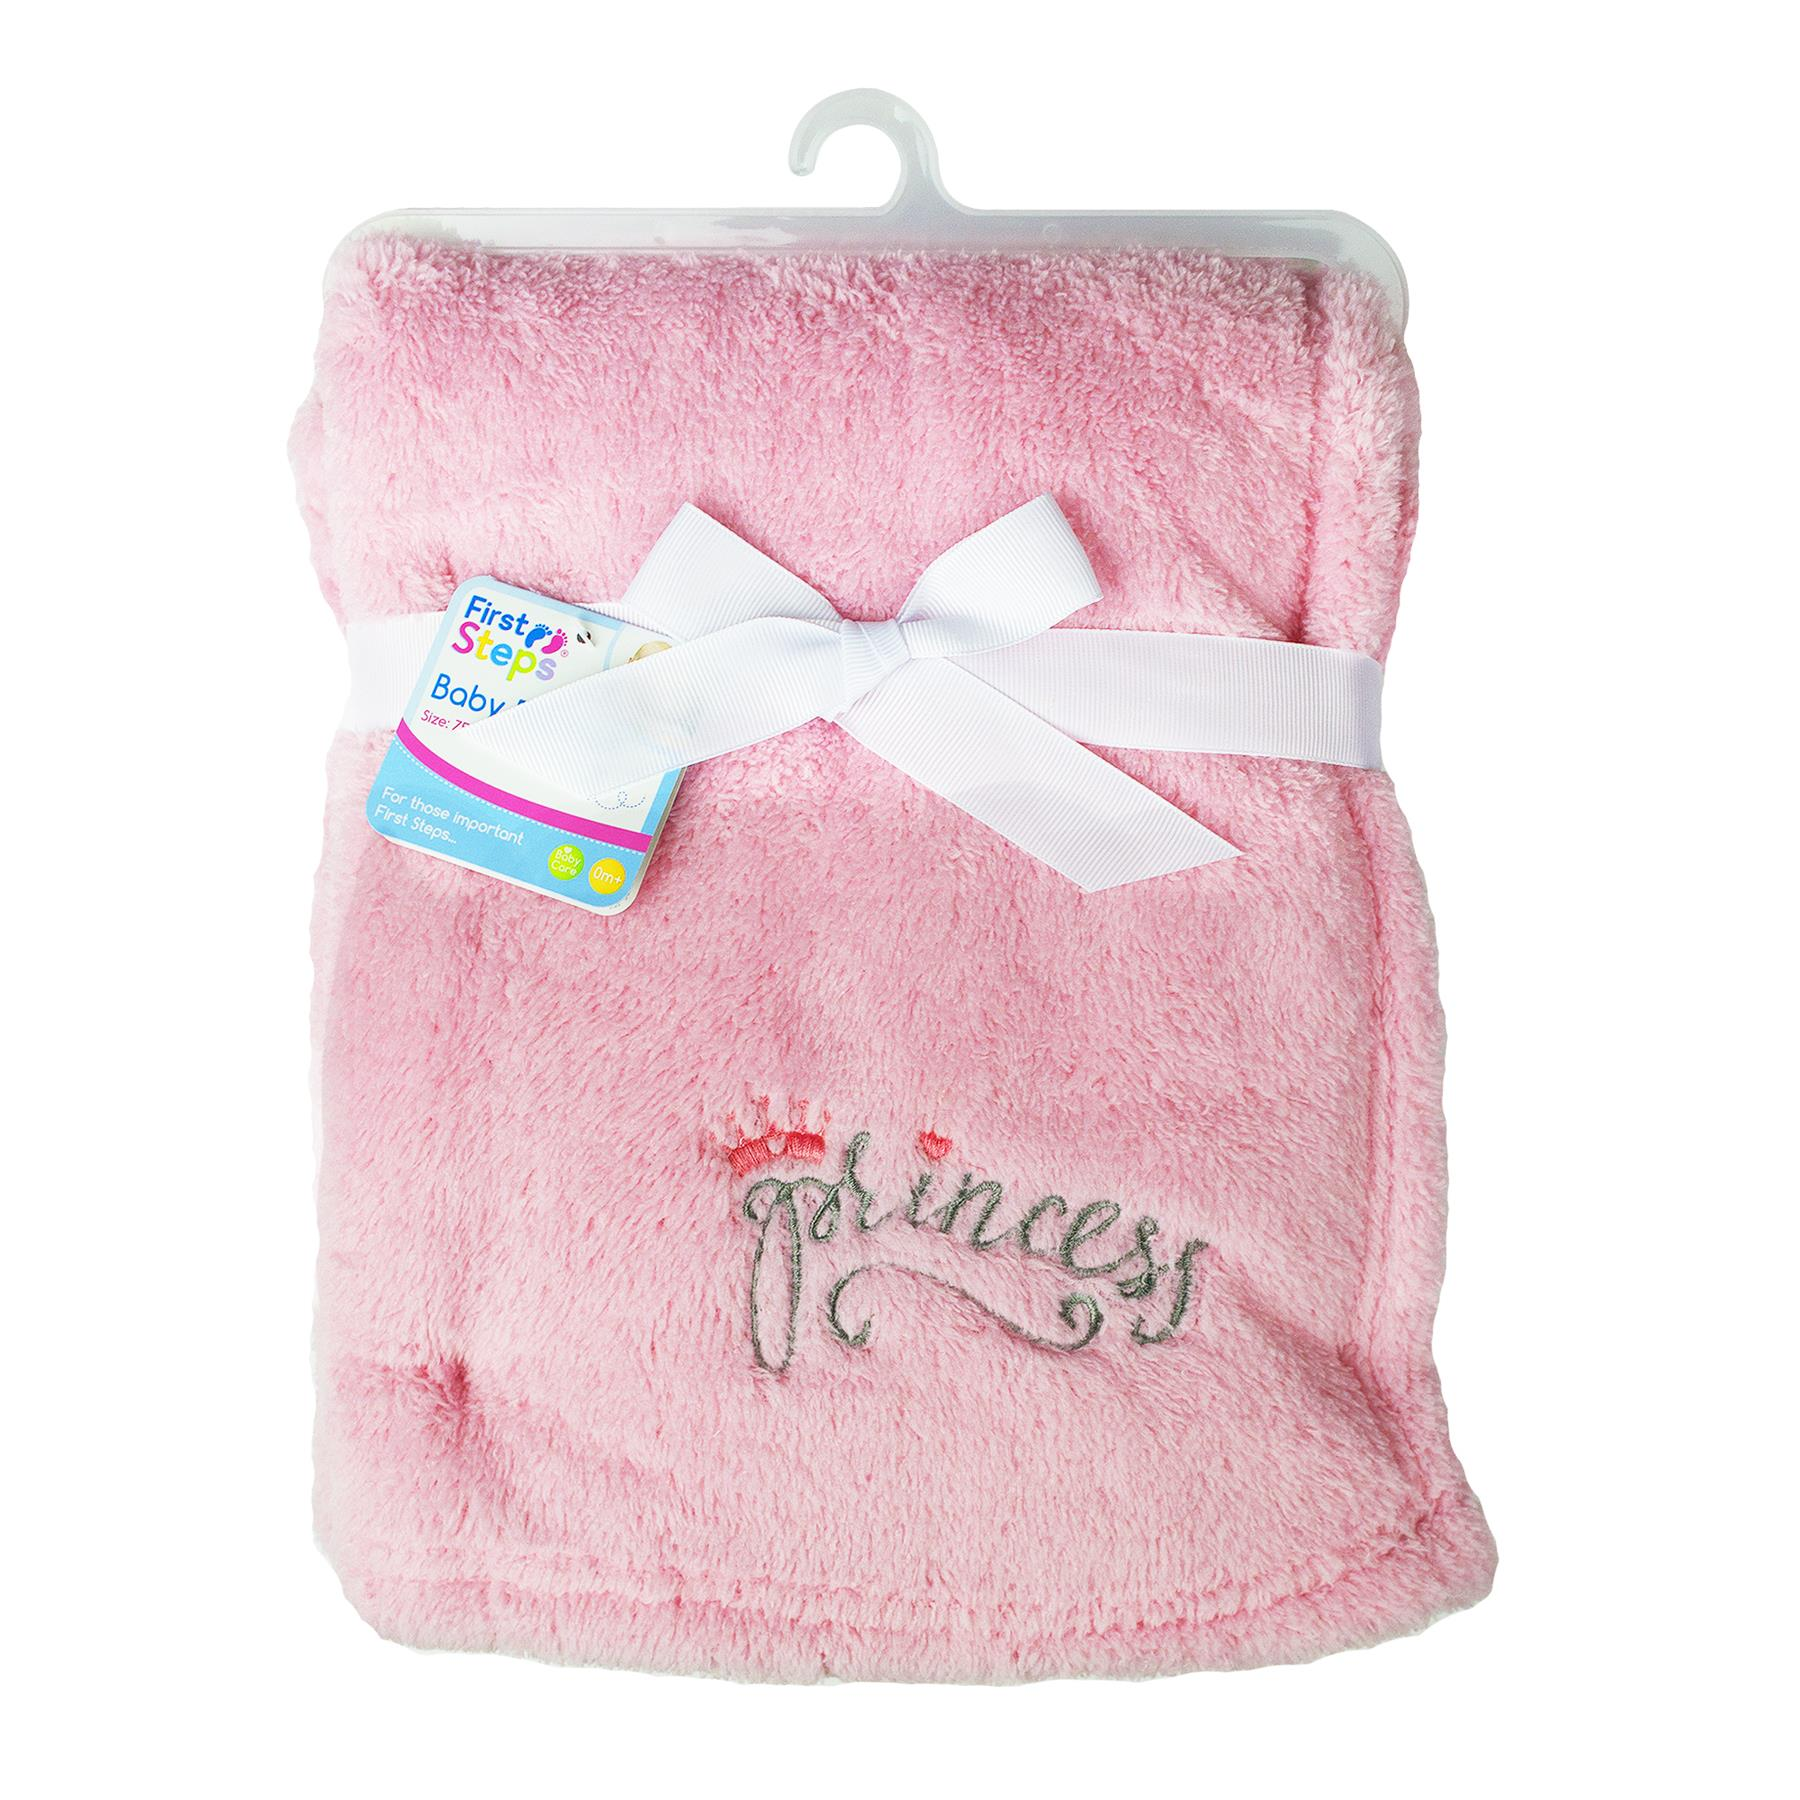 Baby I Love Mum//Dad Wrap Boy//Girl Fleece Soft Pink//Blue Pram Blanket 75 x 100 cm